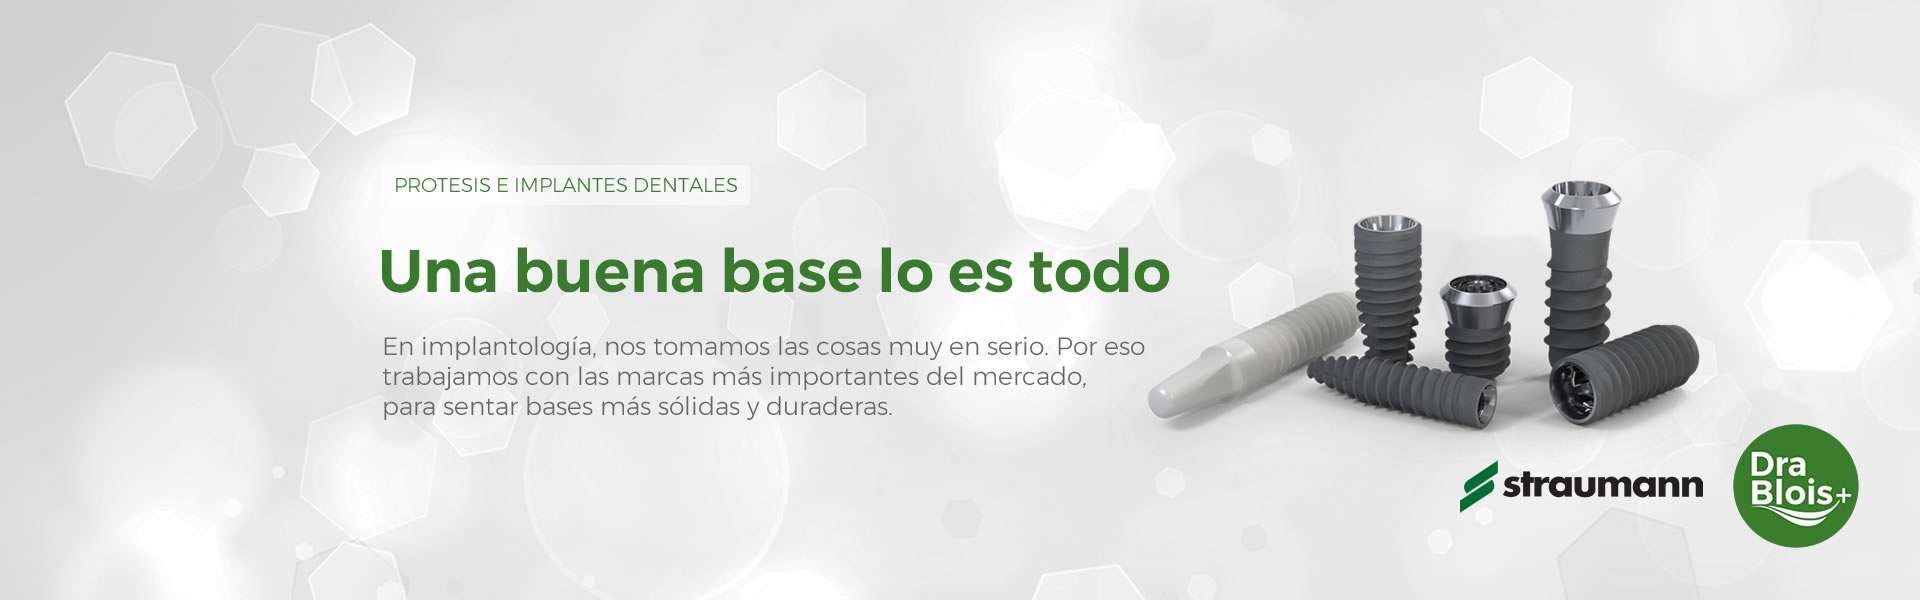 implantes-dentales-pozuelo-de-alarcon-madrid-straumann-drablois-clinica-dental